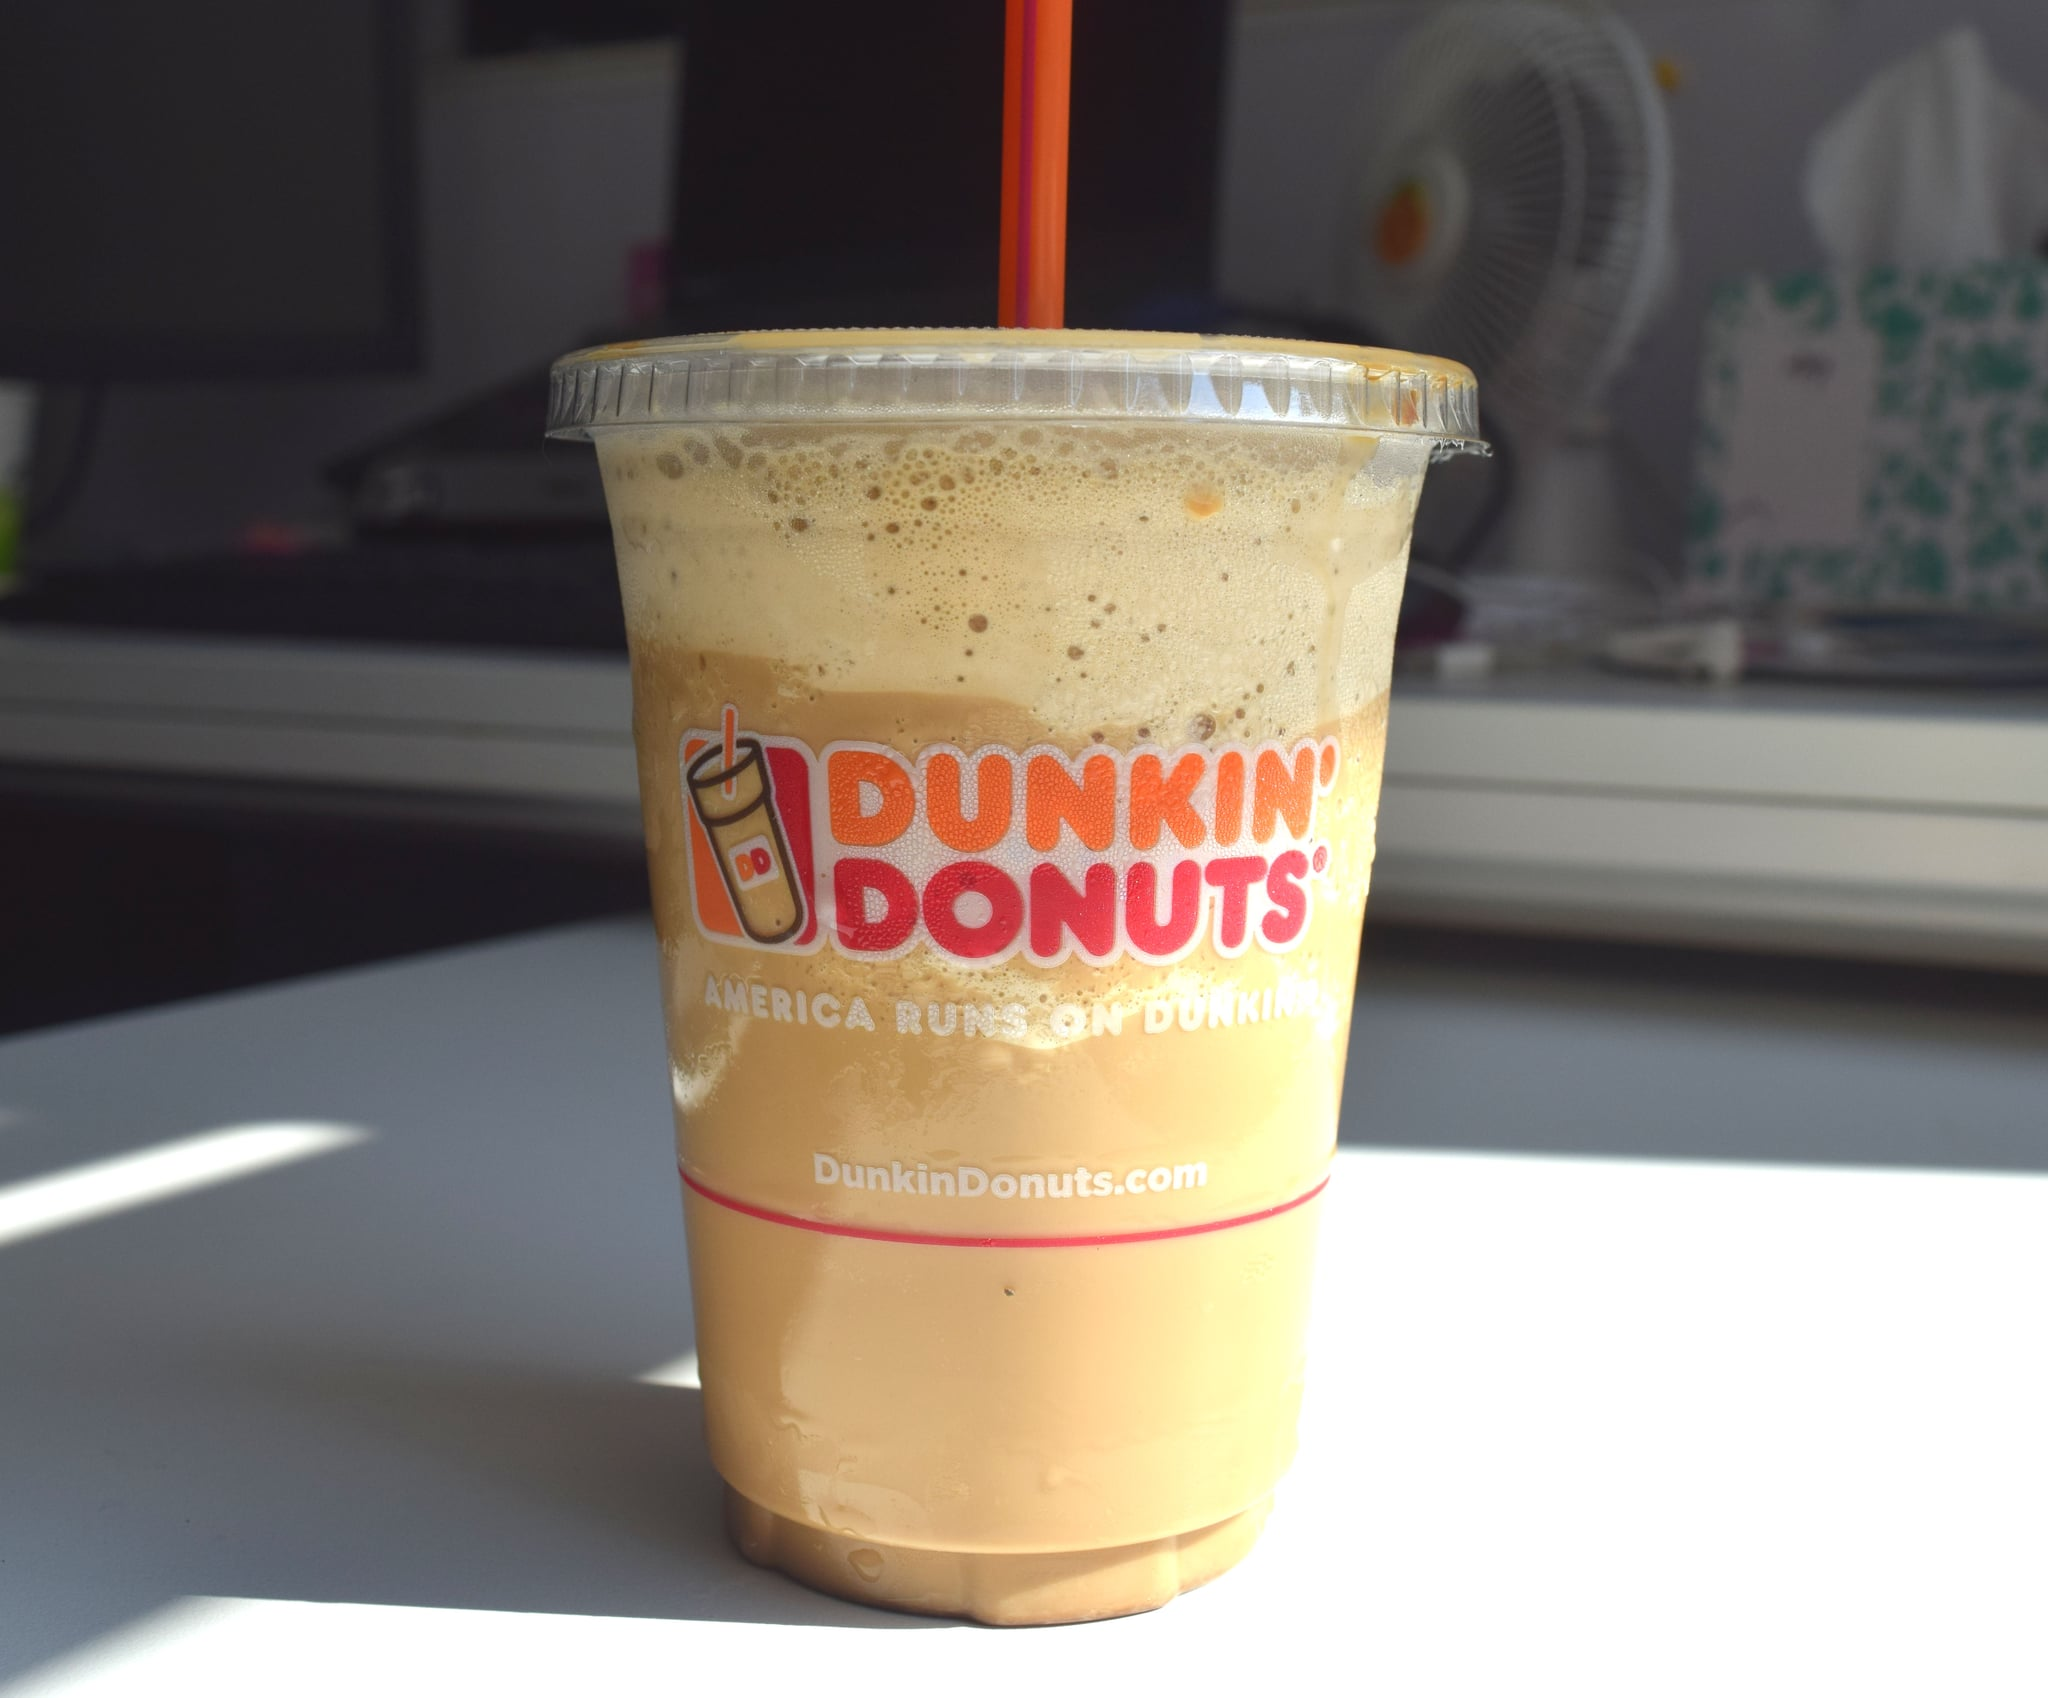 b7490bb83dad8cfe dunks Free Coffee At Dunkin Donuts Today Try Dunkin Donuts New Frozen Coffee For Free Friday